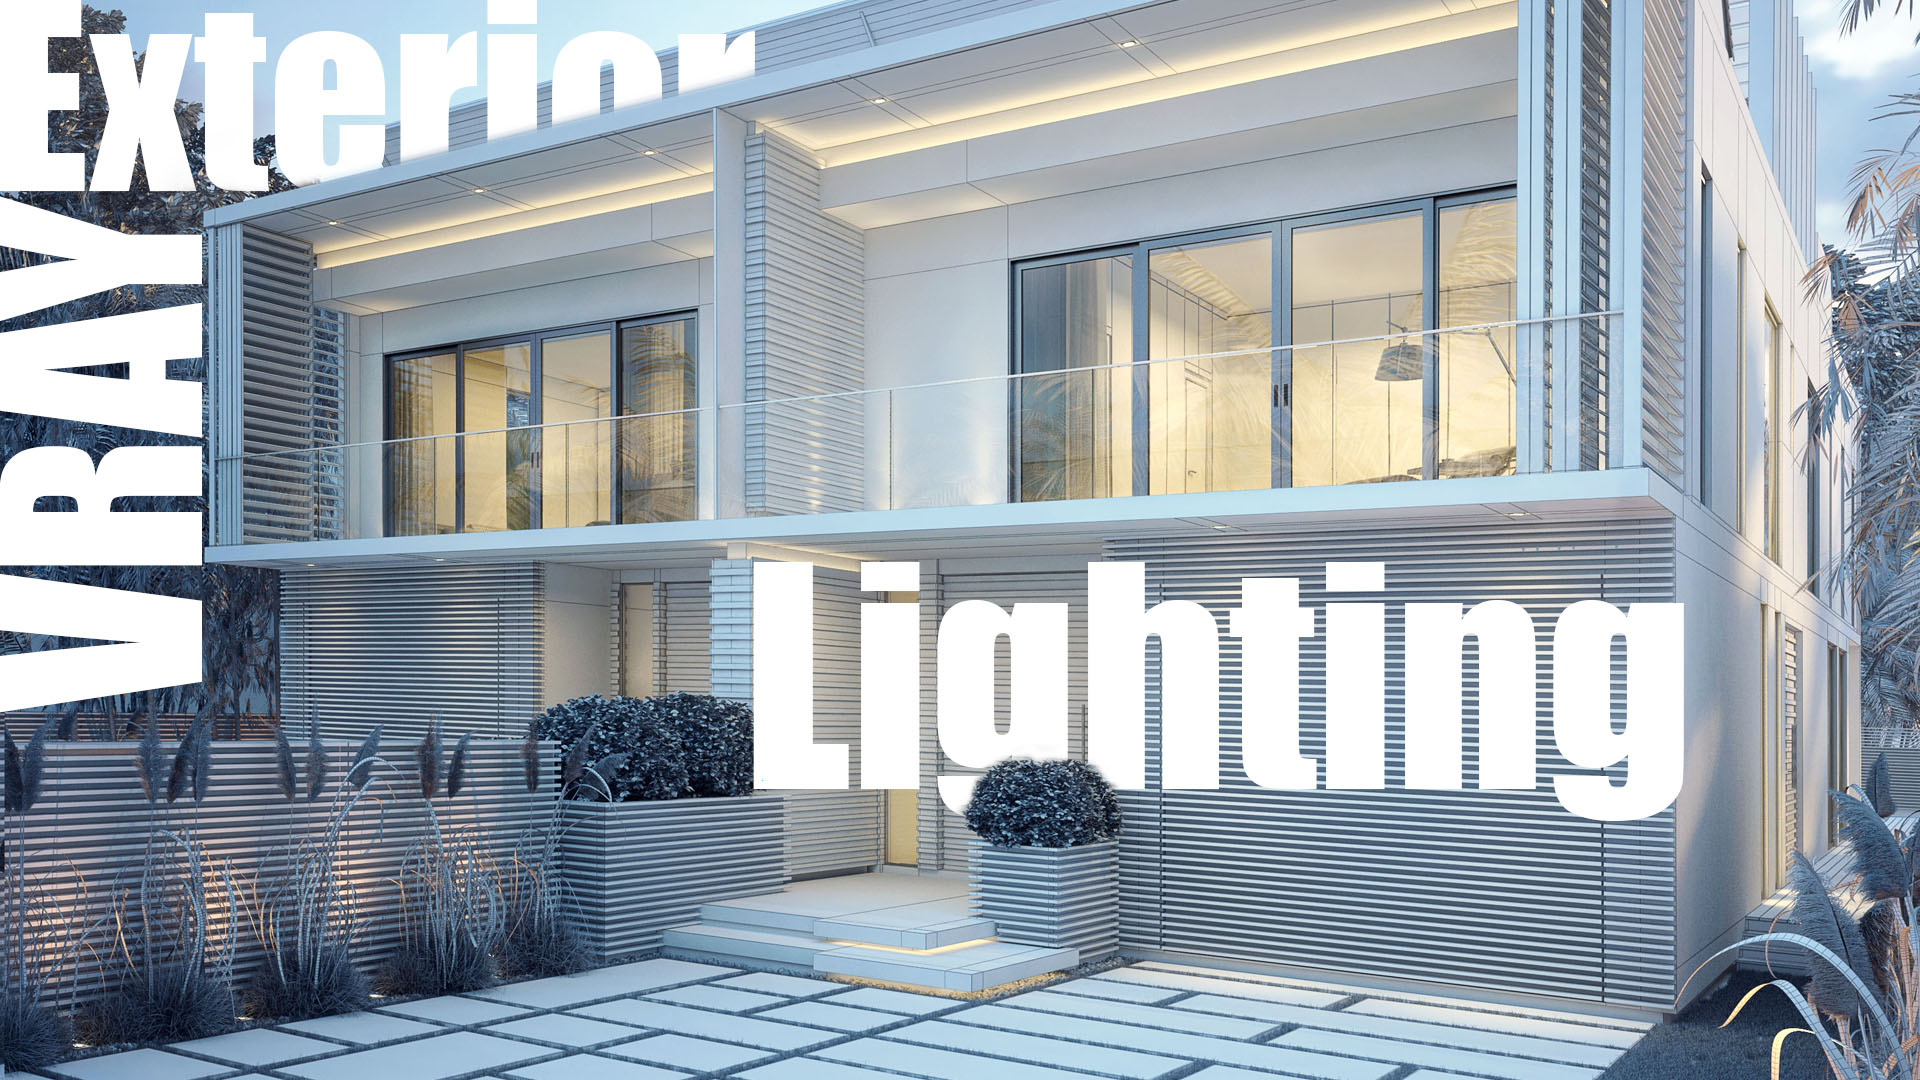 Architektur Rendering Photoshop Vray Exterior Lighting Rendering Video Tutorial